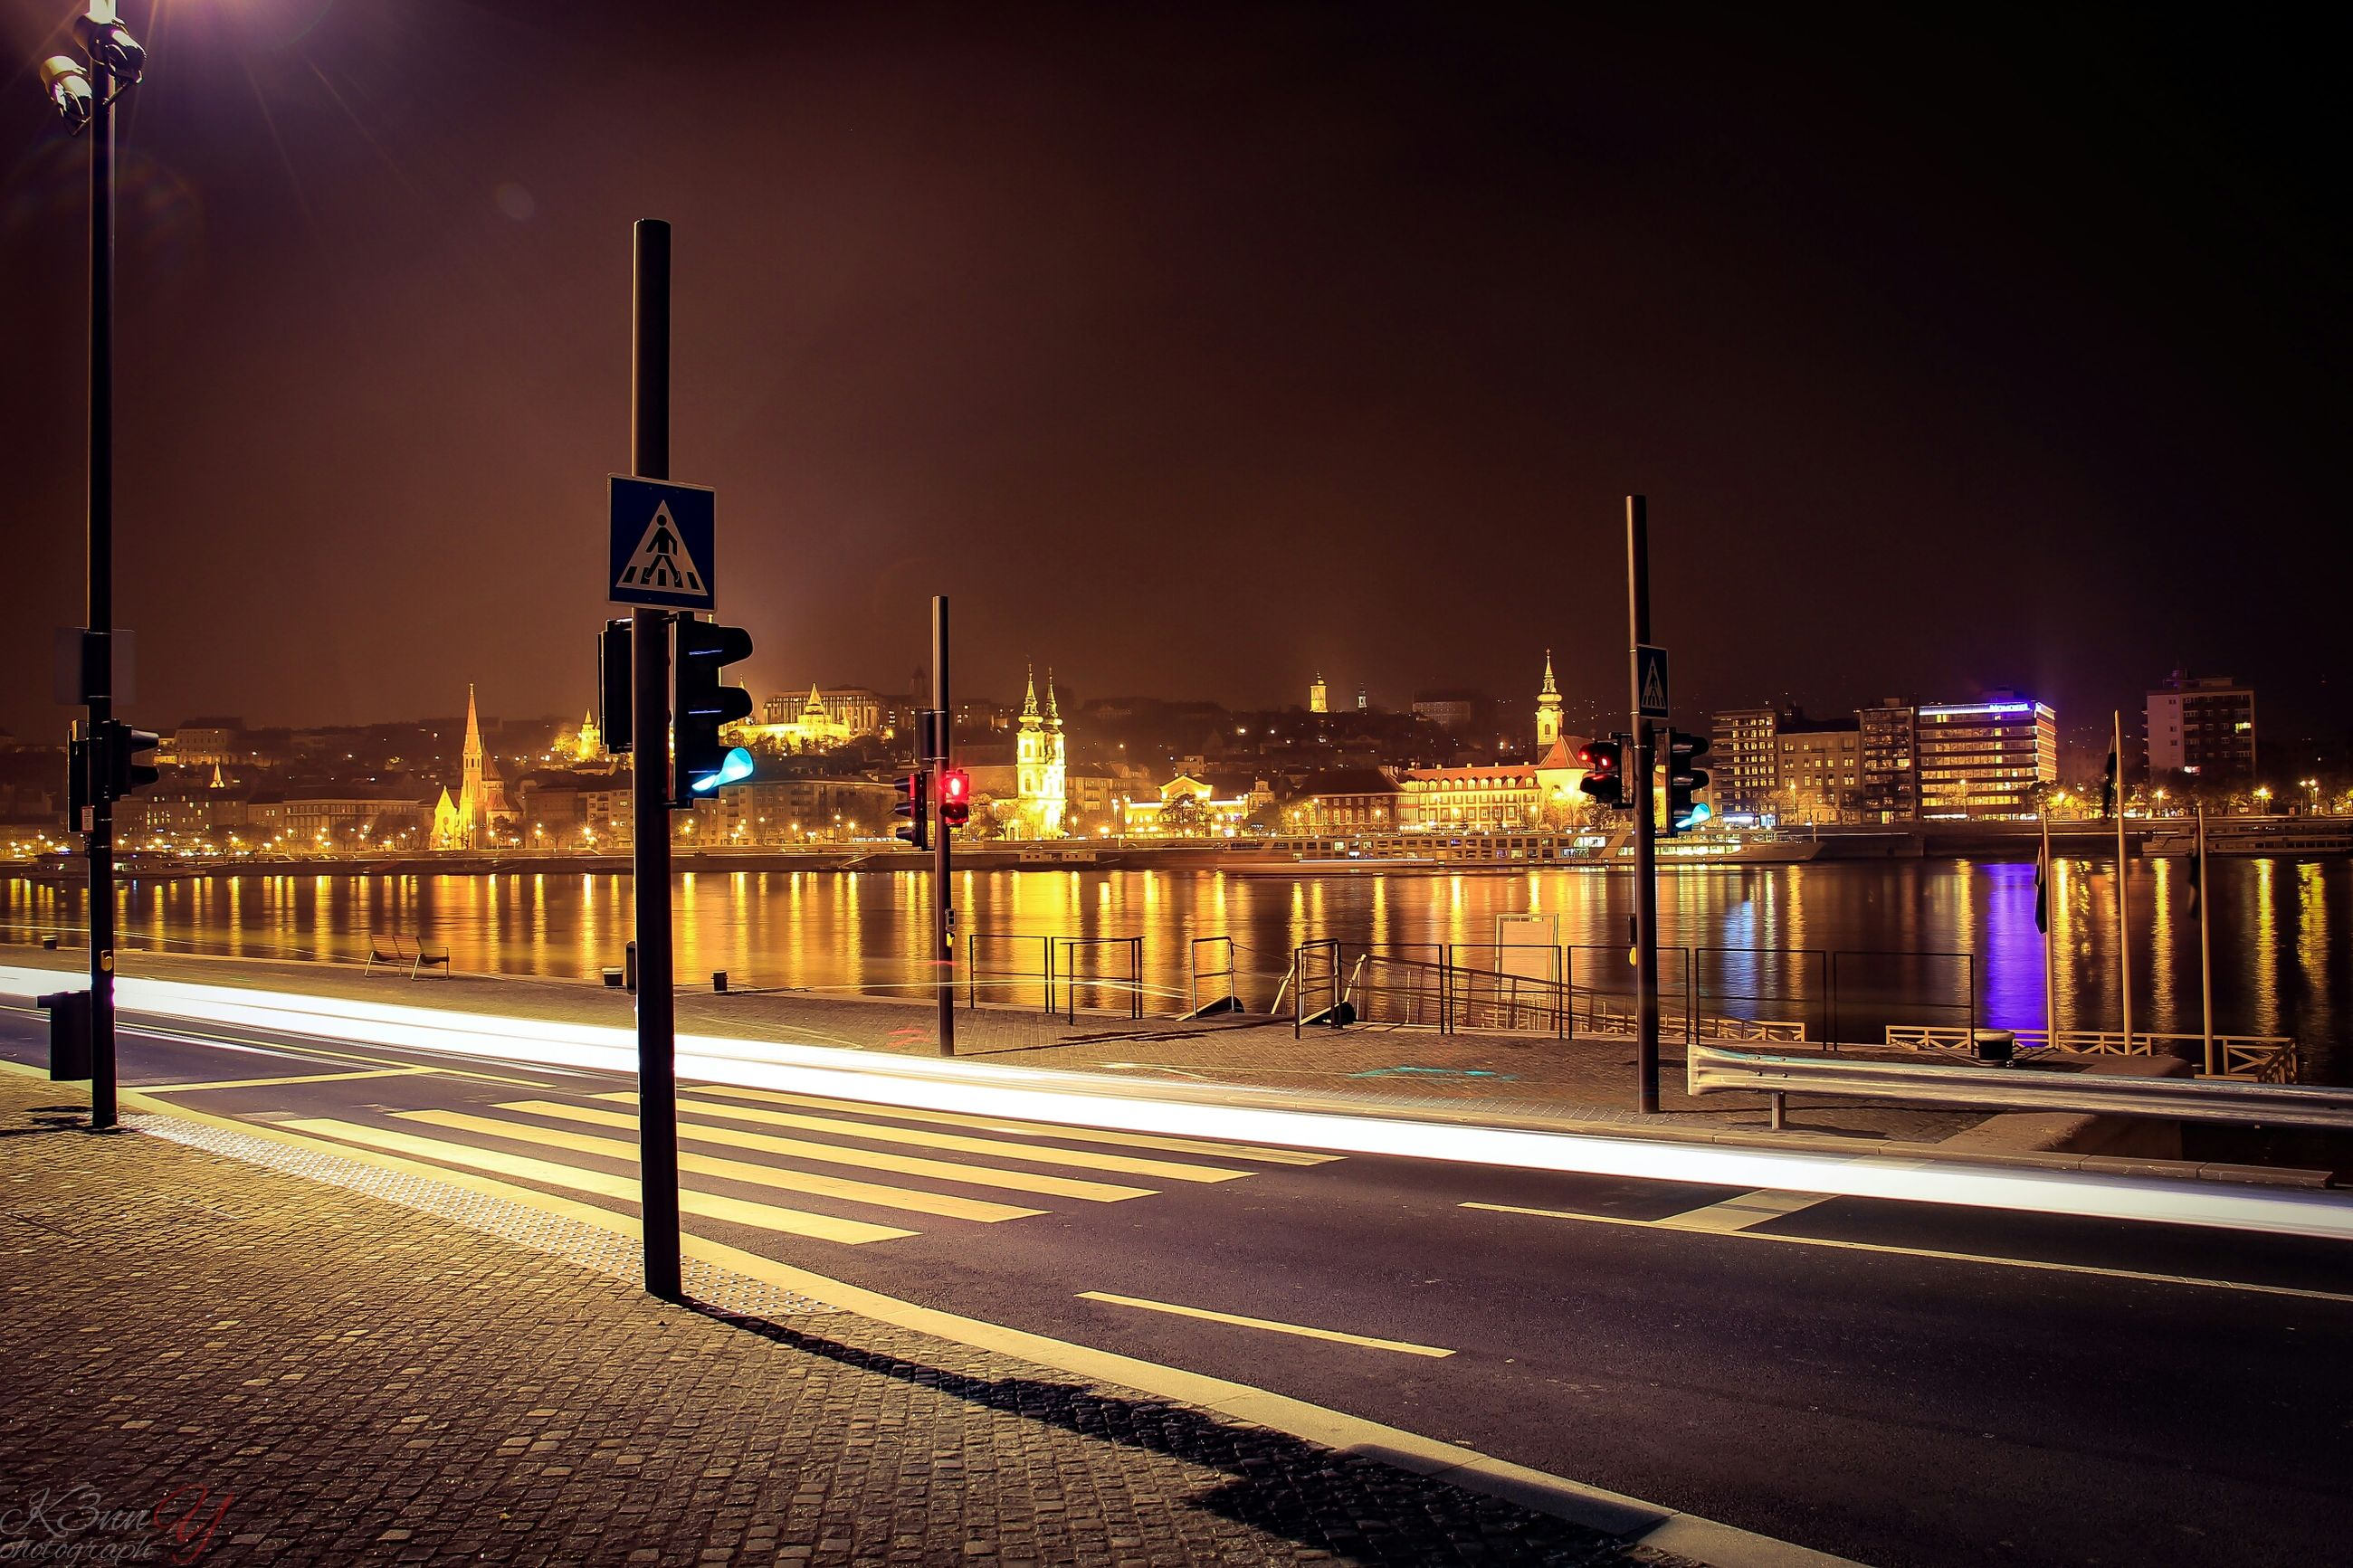 illuminated, building exterior, city, architecture, built structure, night, street light, street, road, the way forward, lighting equipment, transportation, sky, railing, city life, cityscape, empty, road marking, outdoors, clear sky